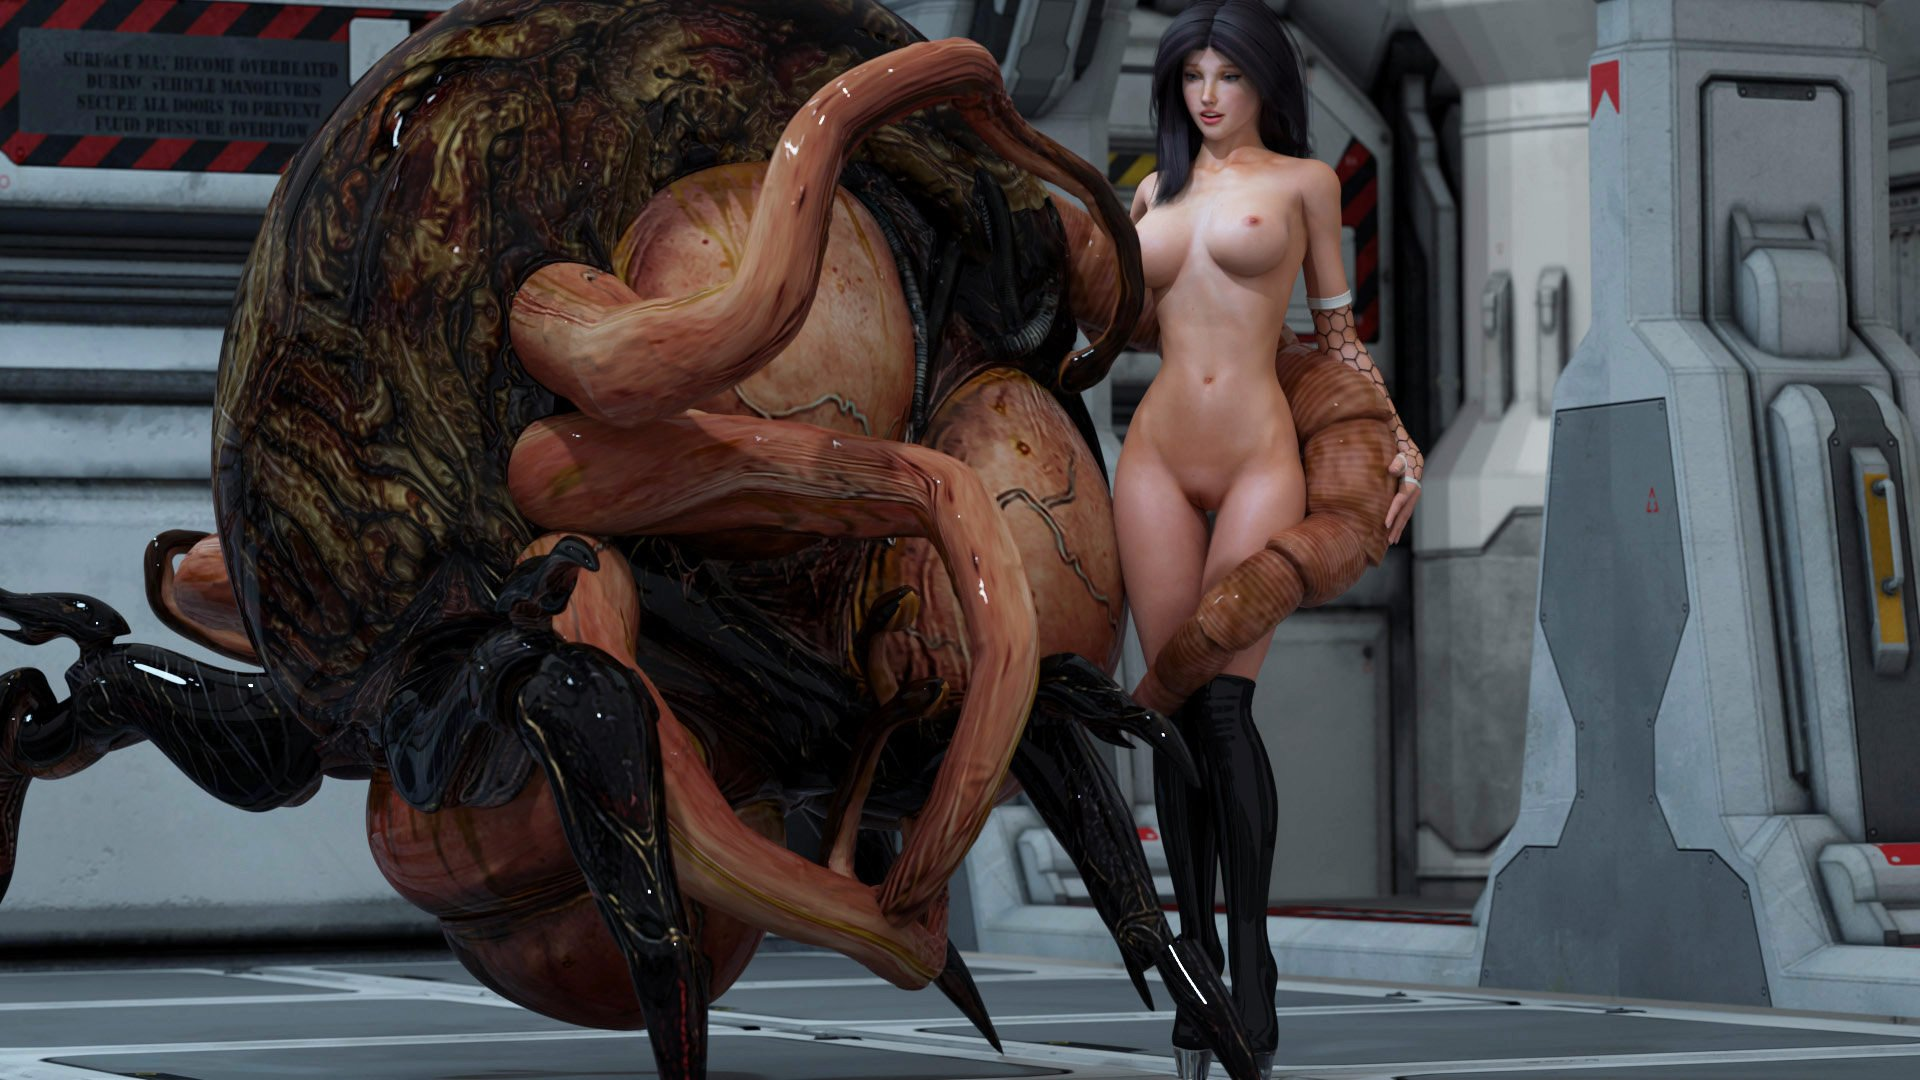 image 3d monster gay what makes him even hotter